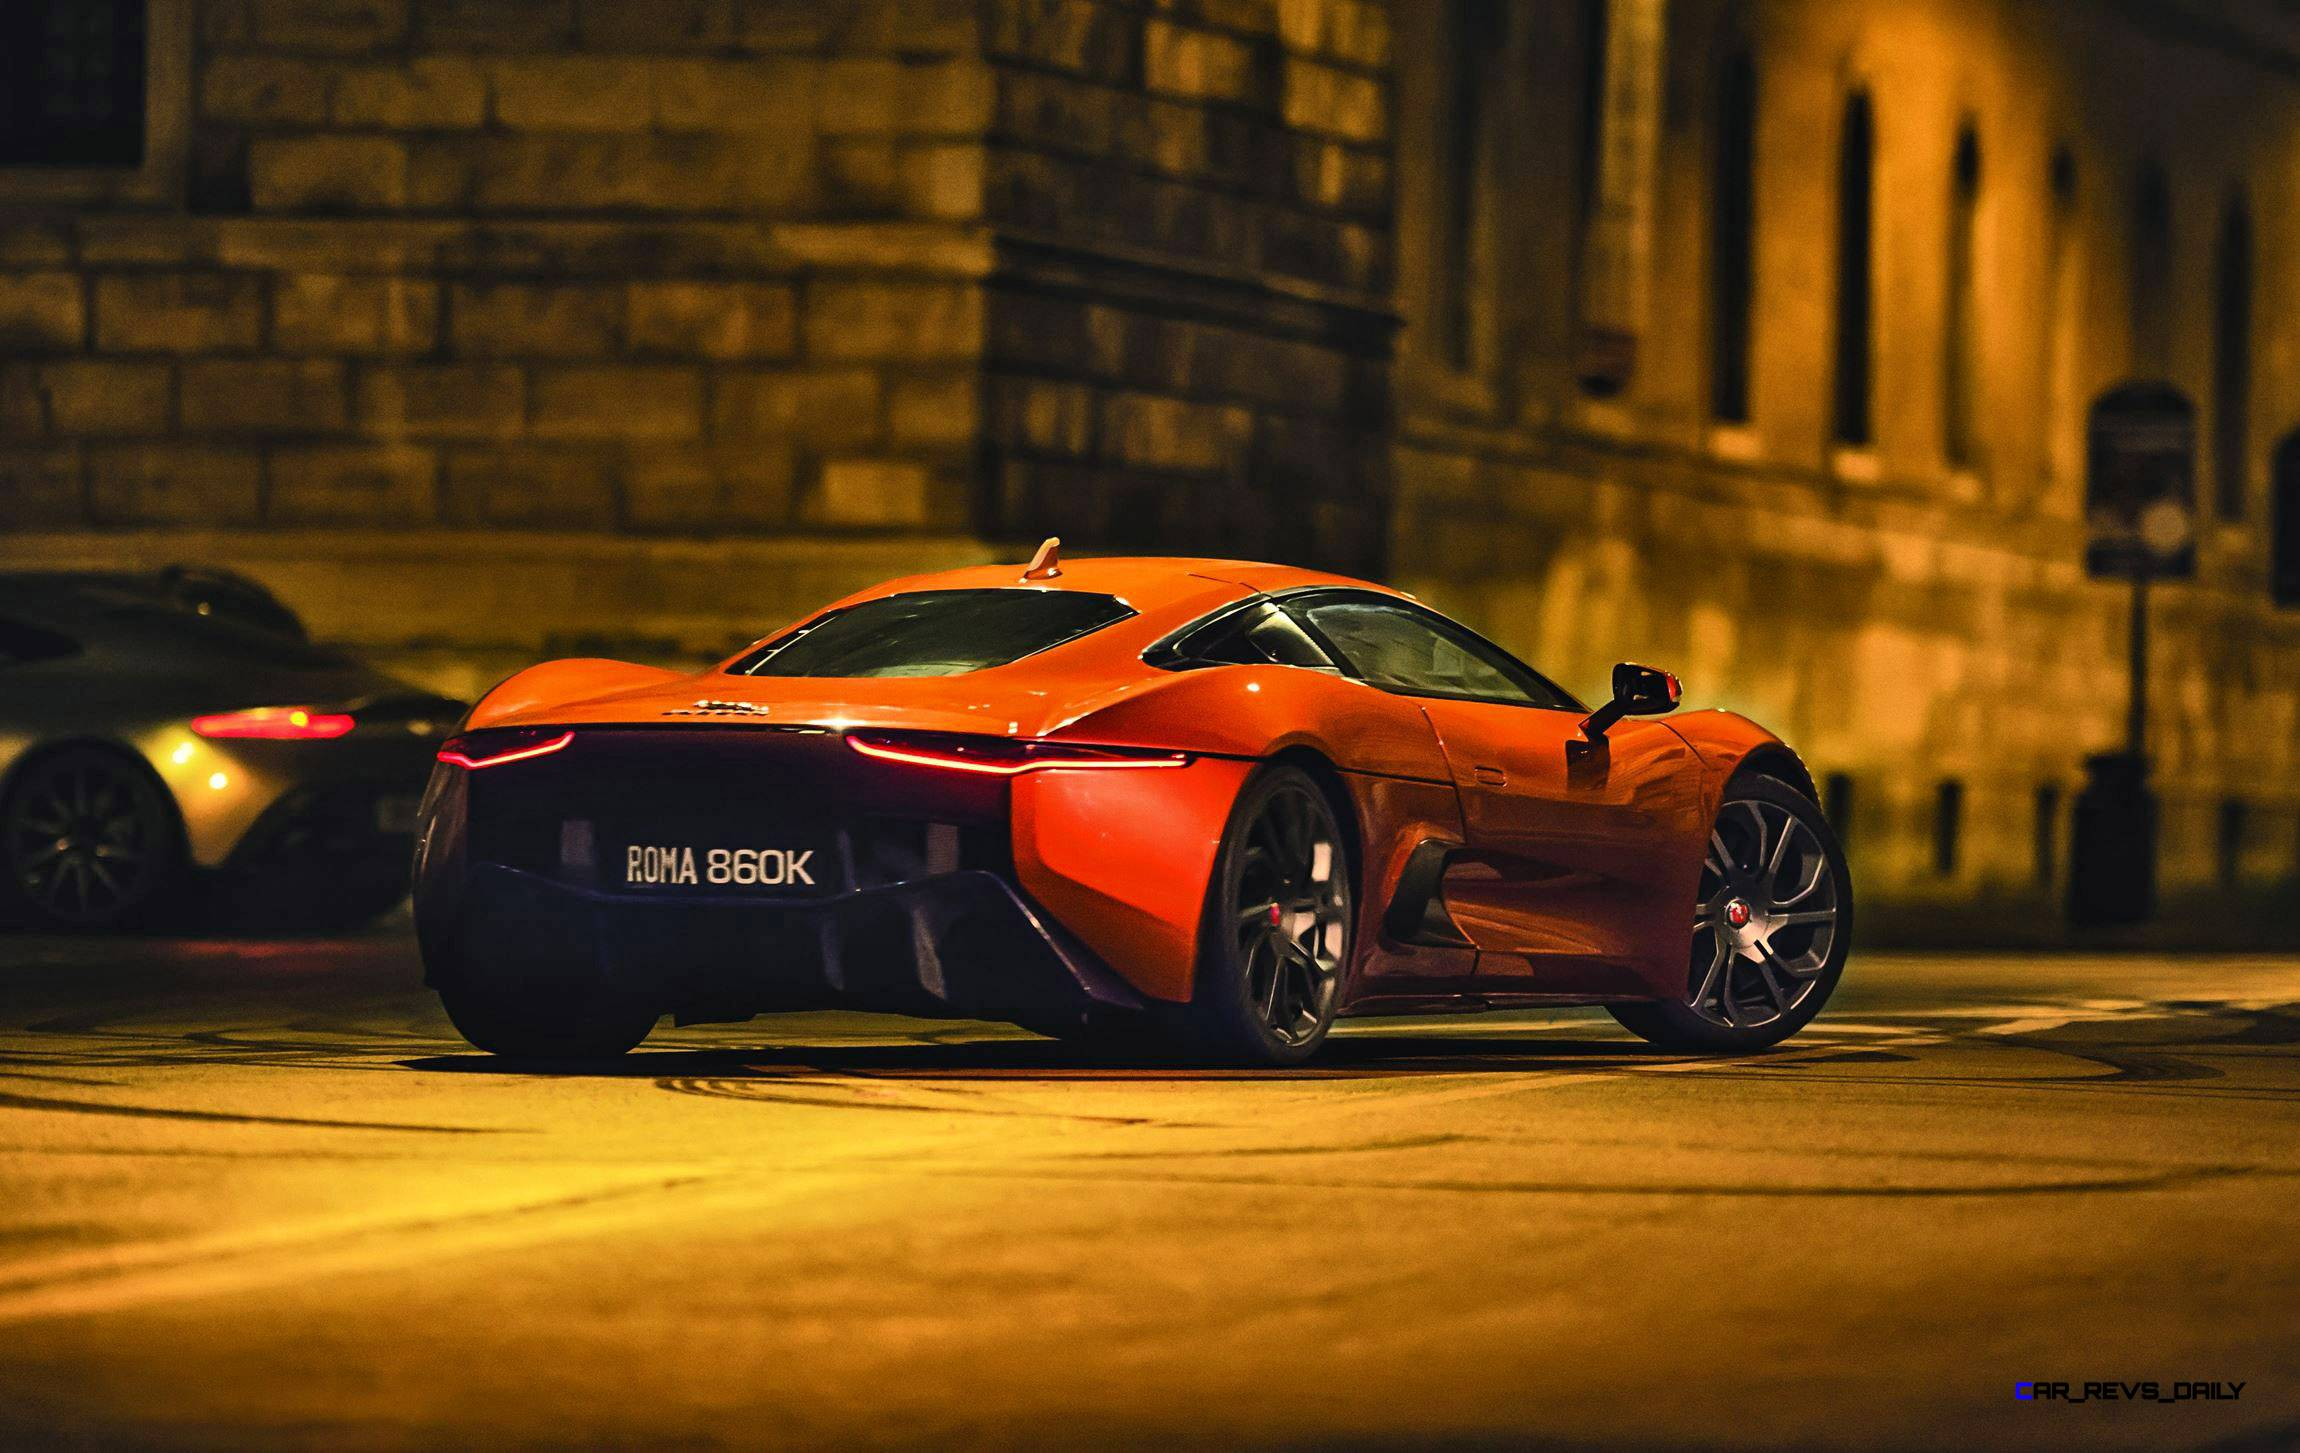 007 spectre bond cars jaguar cx 75 land rover rrs svr 23 click to open largest resolution image publicscrutiny Image collections